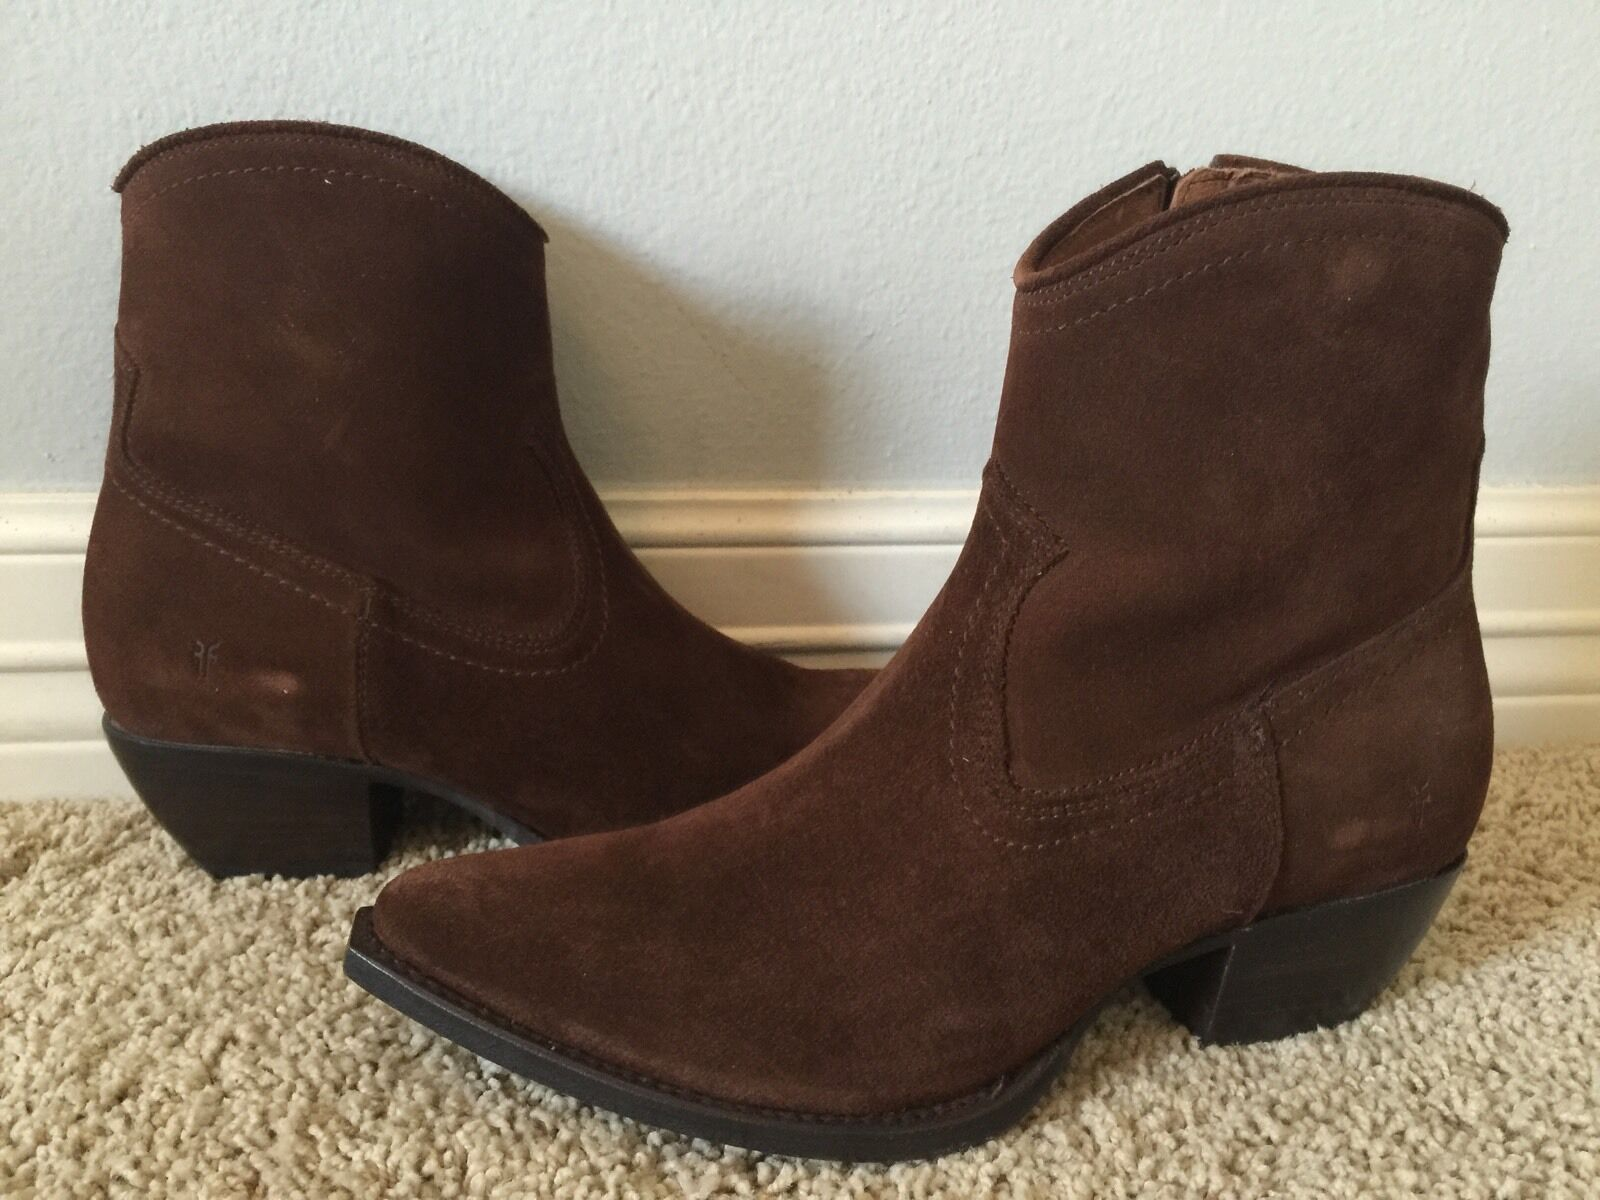 New FRYE Women's Sacha Short Chocolate Brown Suede Boots Sz 8 Retail 328